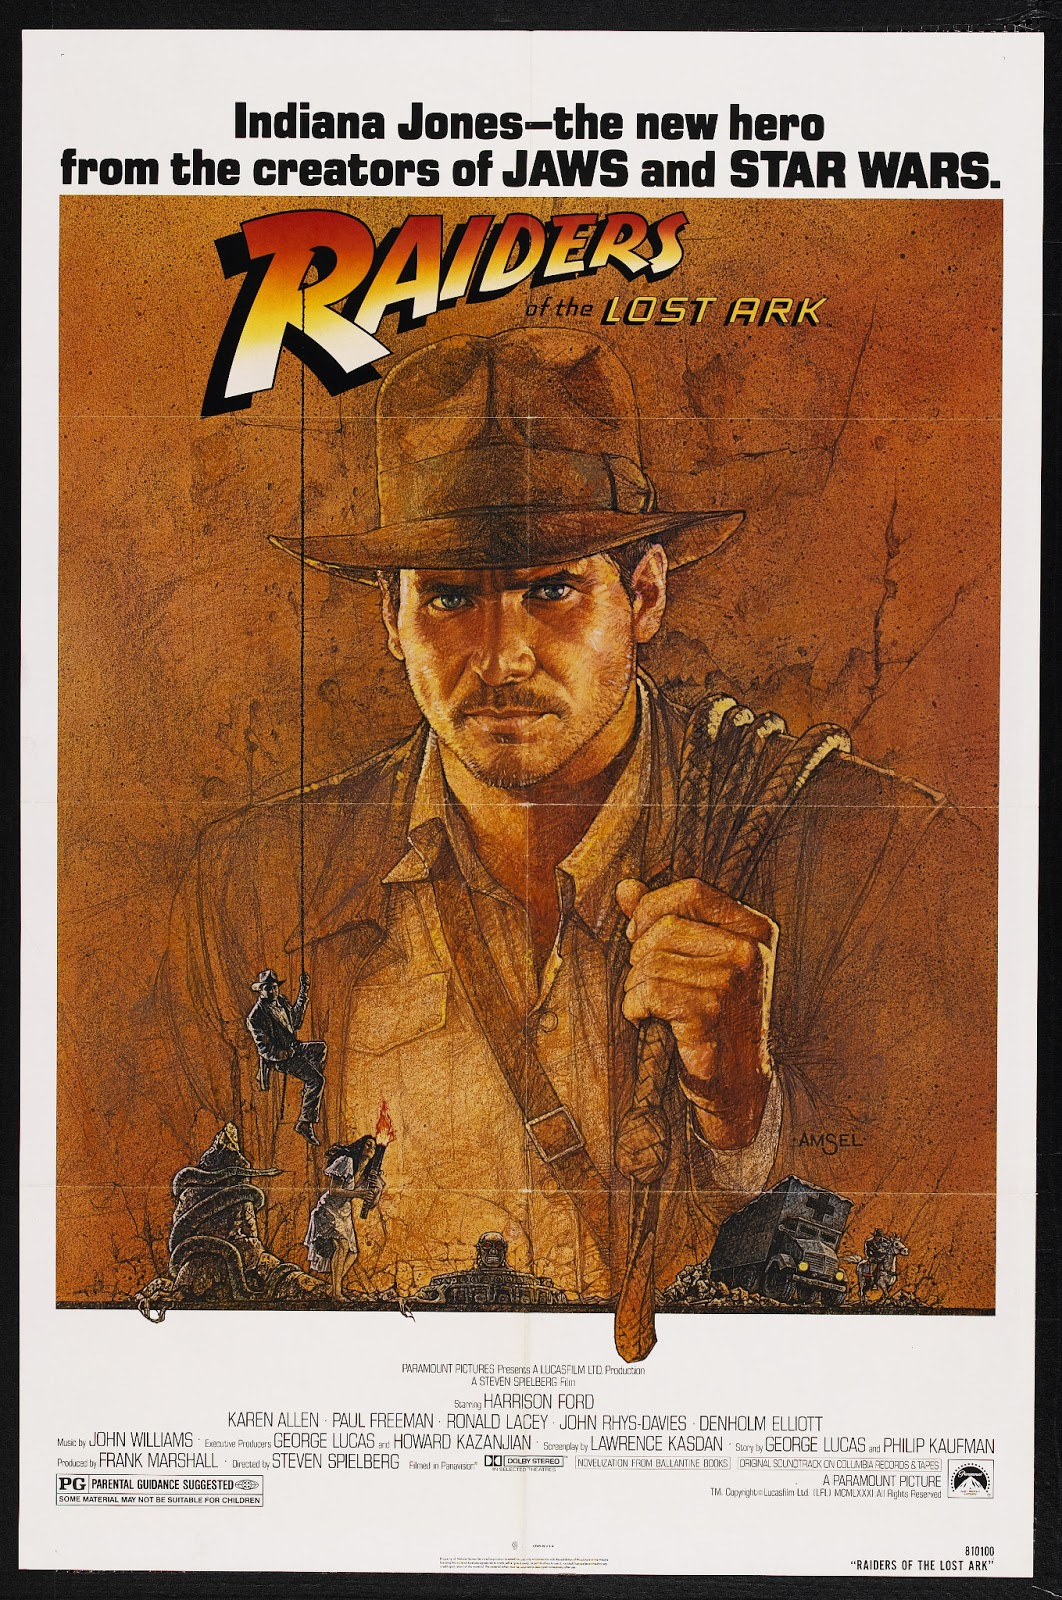 Original 1981 theatrical poster for Raiders of the Lost Ark